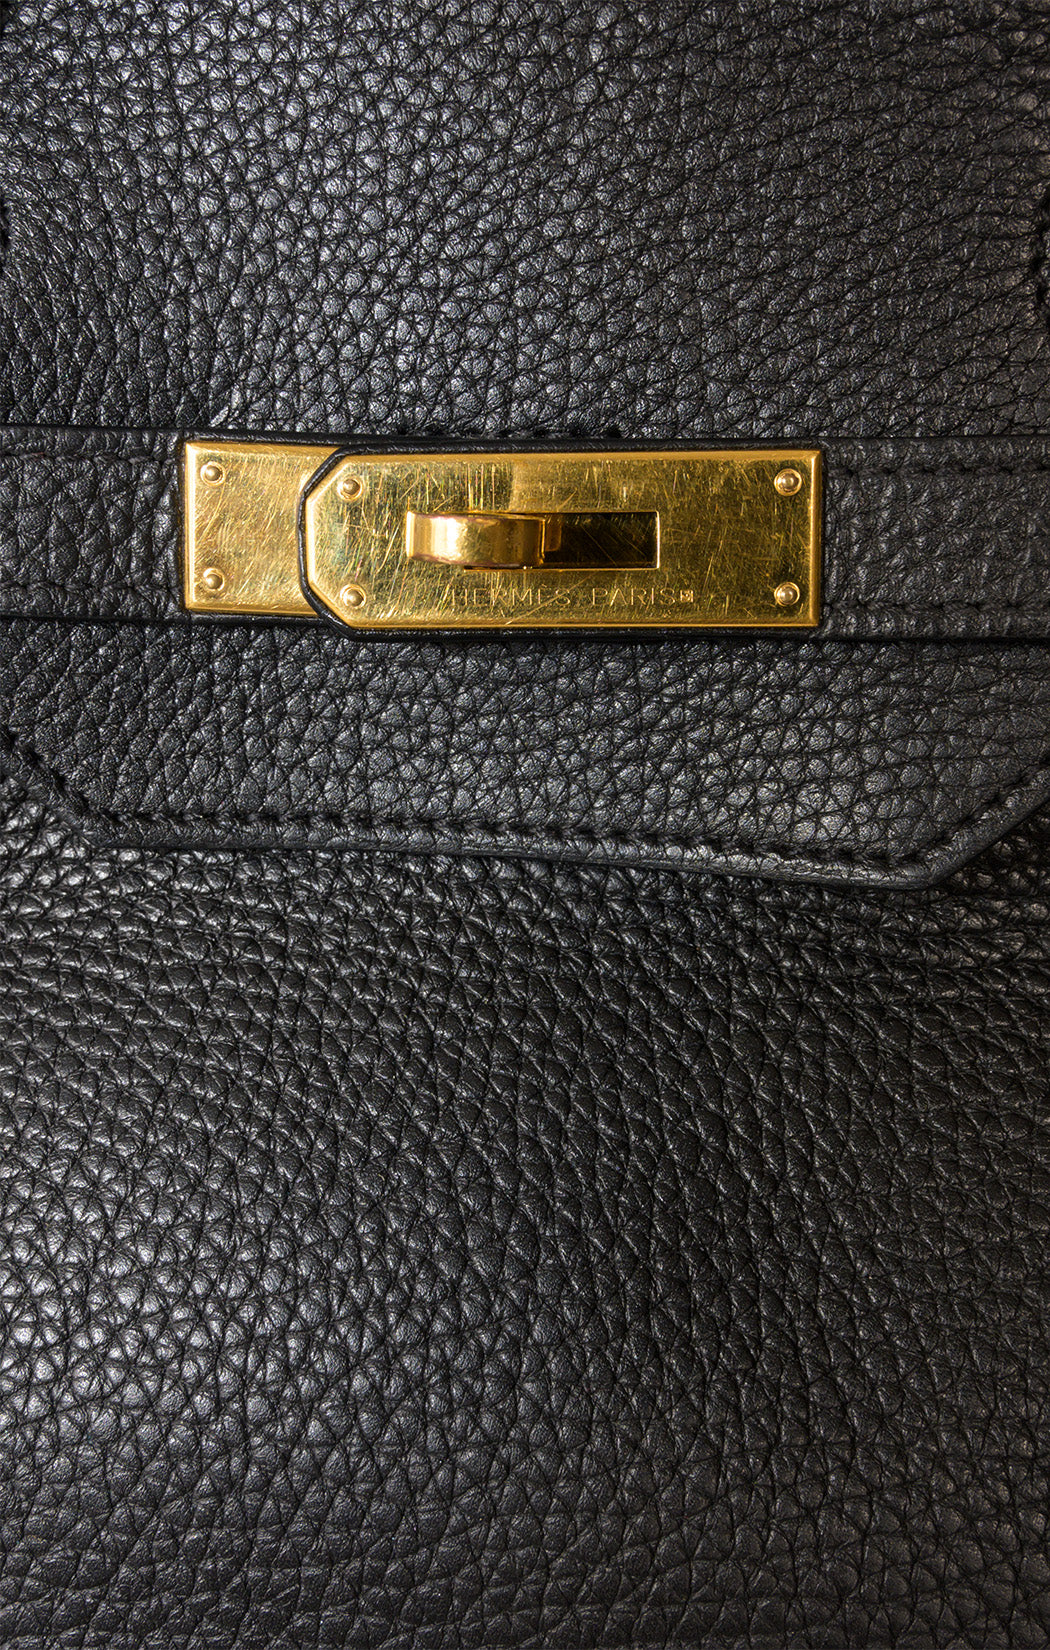 Closeup view of HERMES BIRKIN 40 Handbag